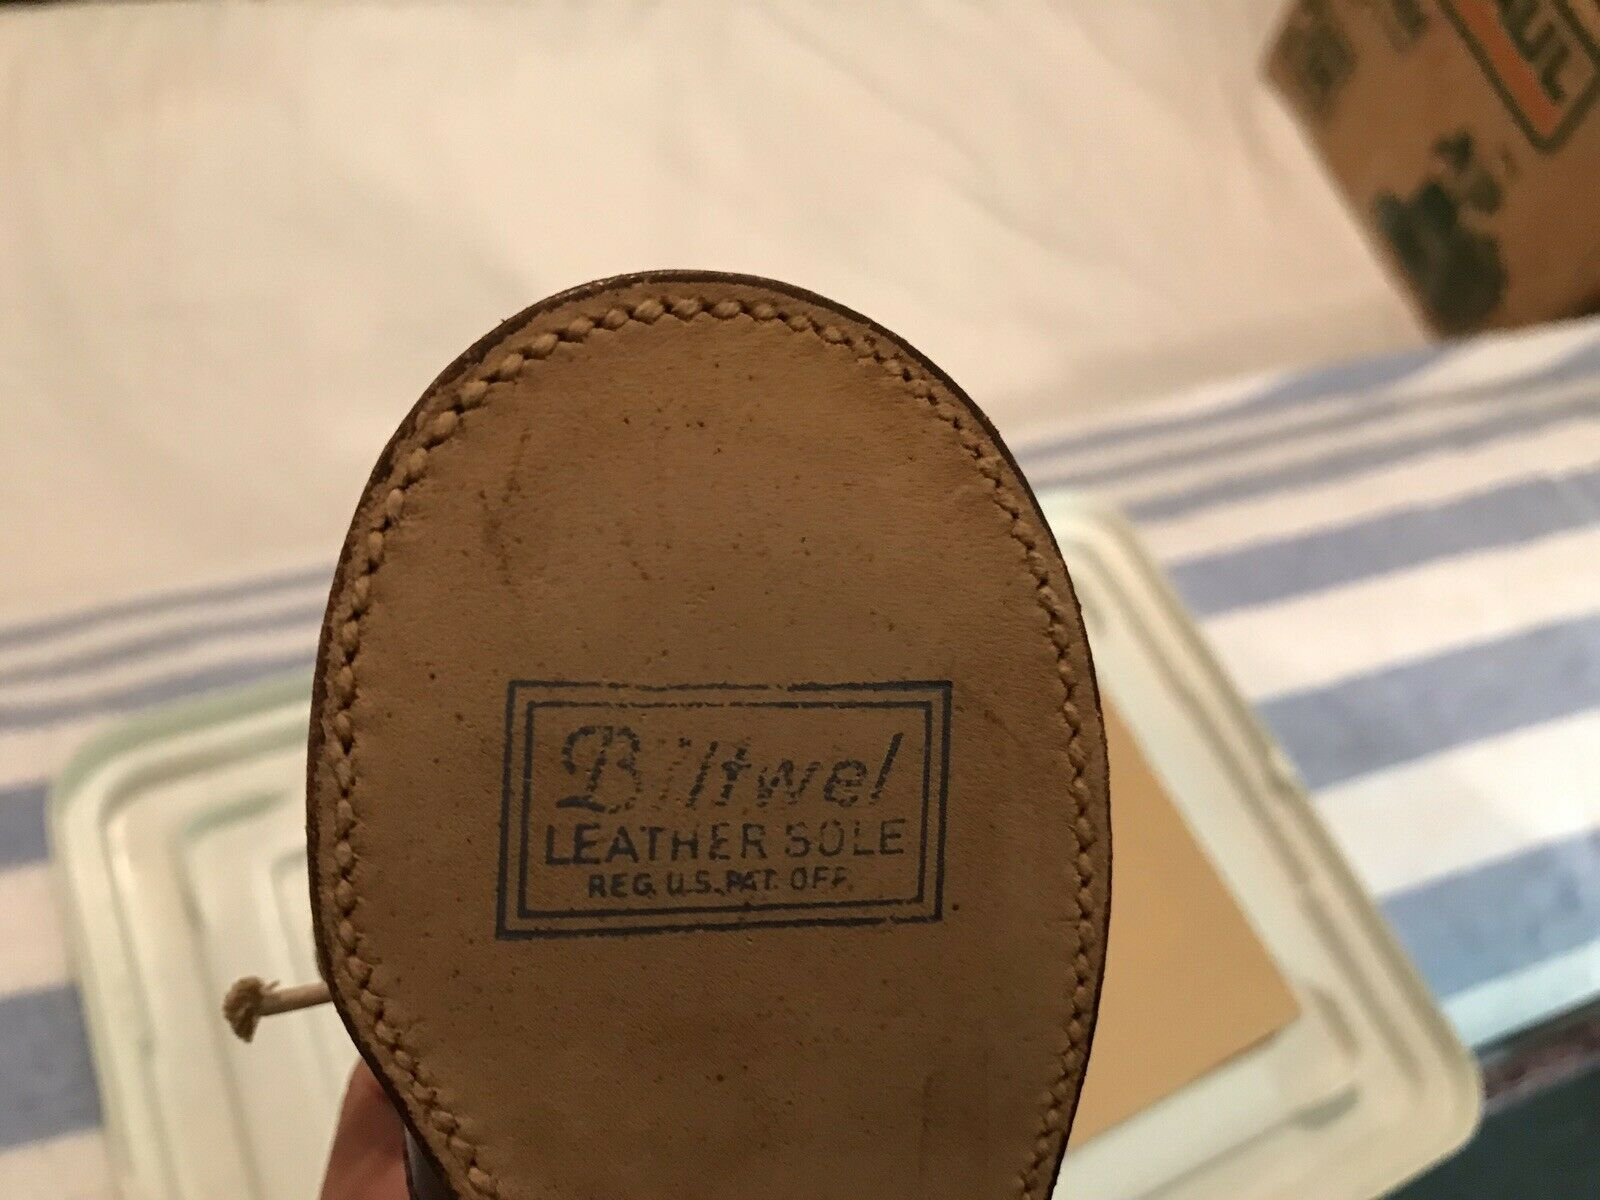 1960s Child Two Tone Dress shoes! - image 6